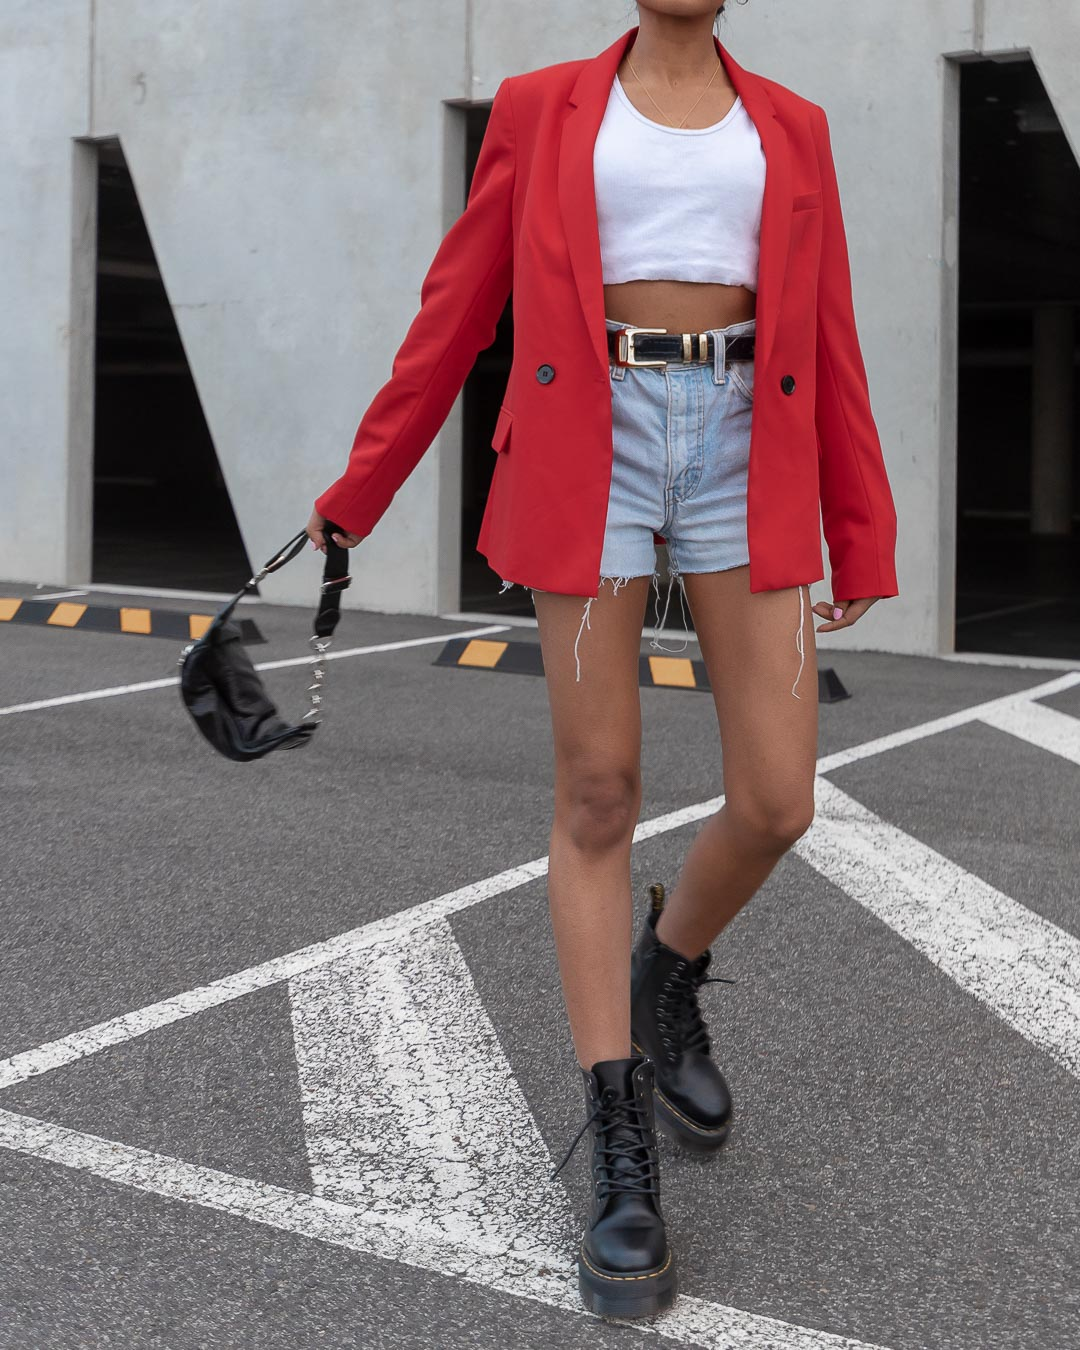 combat-boots-pose-and-repeat